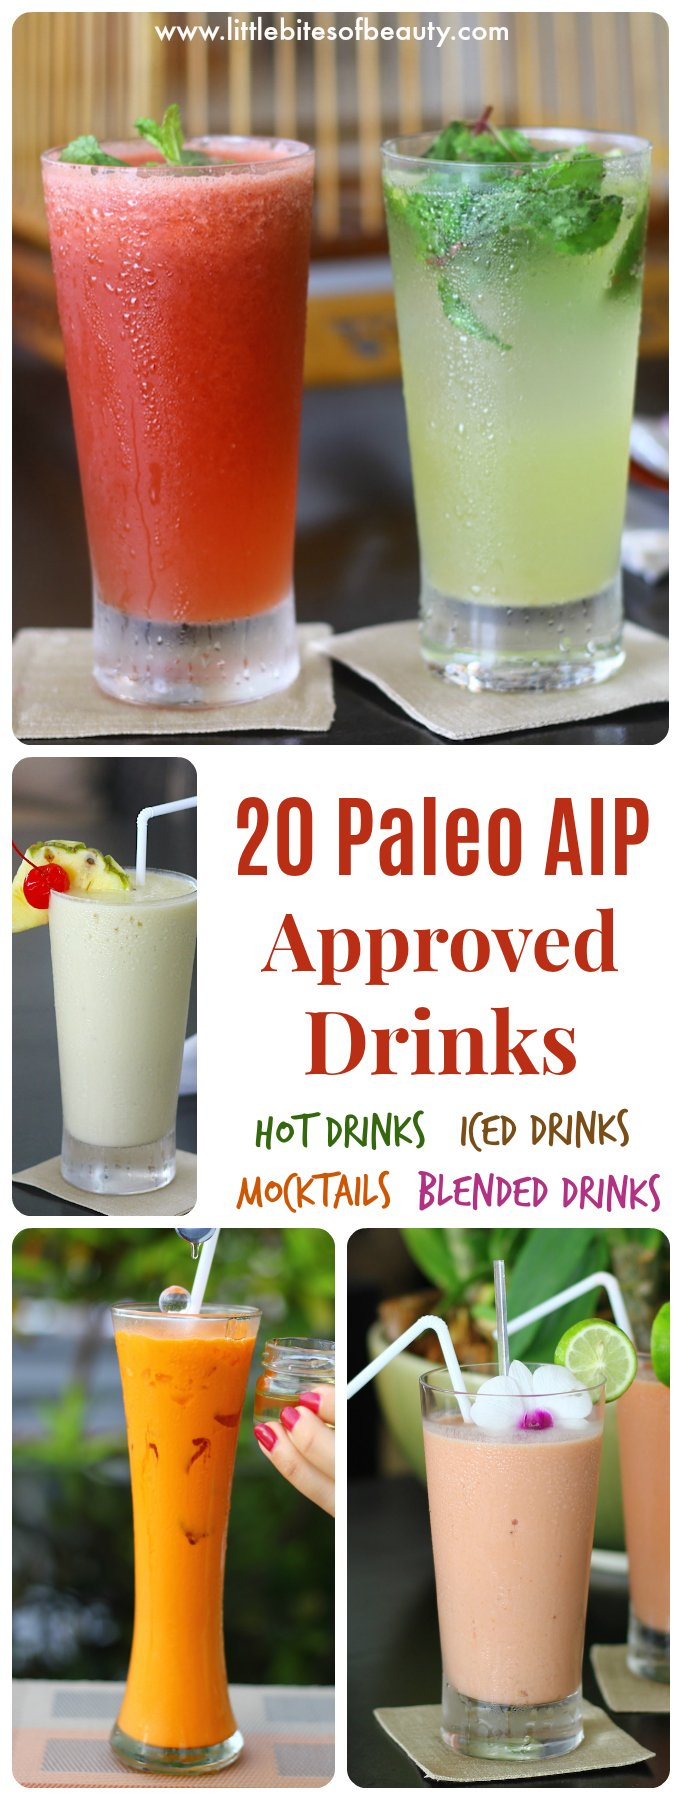 20 Paleo AIP Compliant Drinks